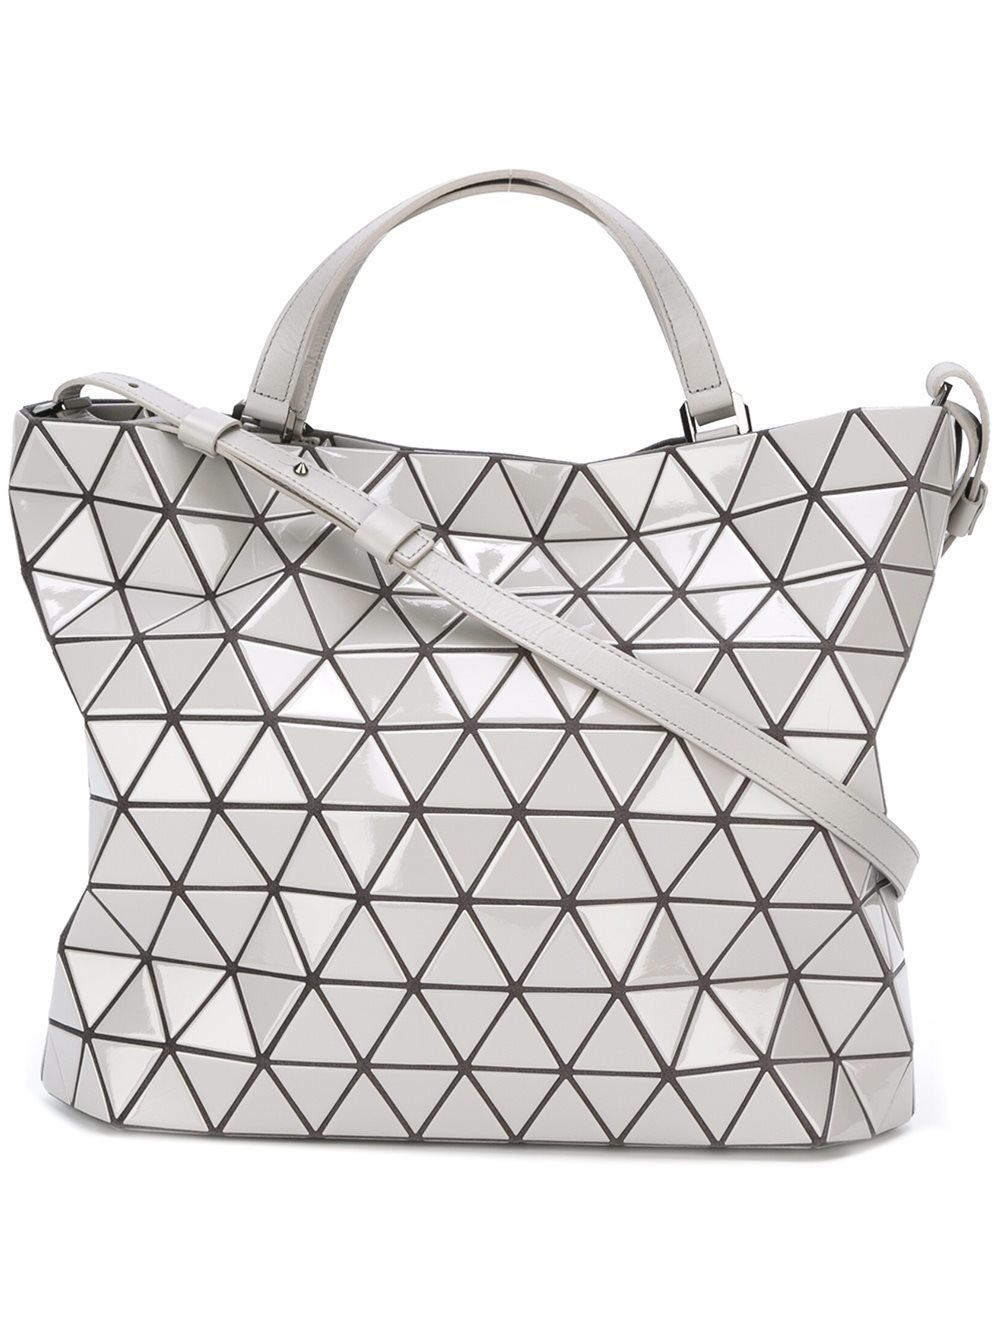 bao bao issey miyake prism pattern tote bag women polyester one size in gray lyst. Black Bedroom Furniture Sets. Home Design Ideas